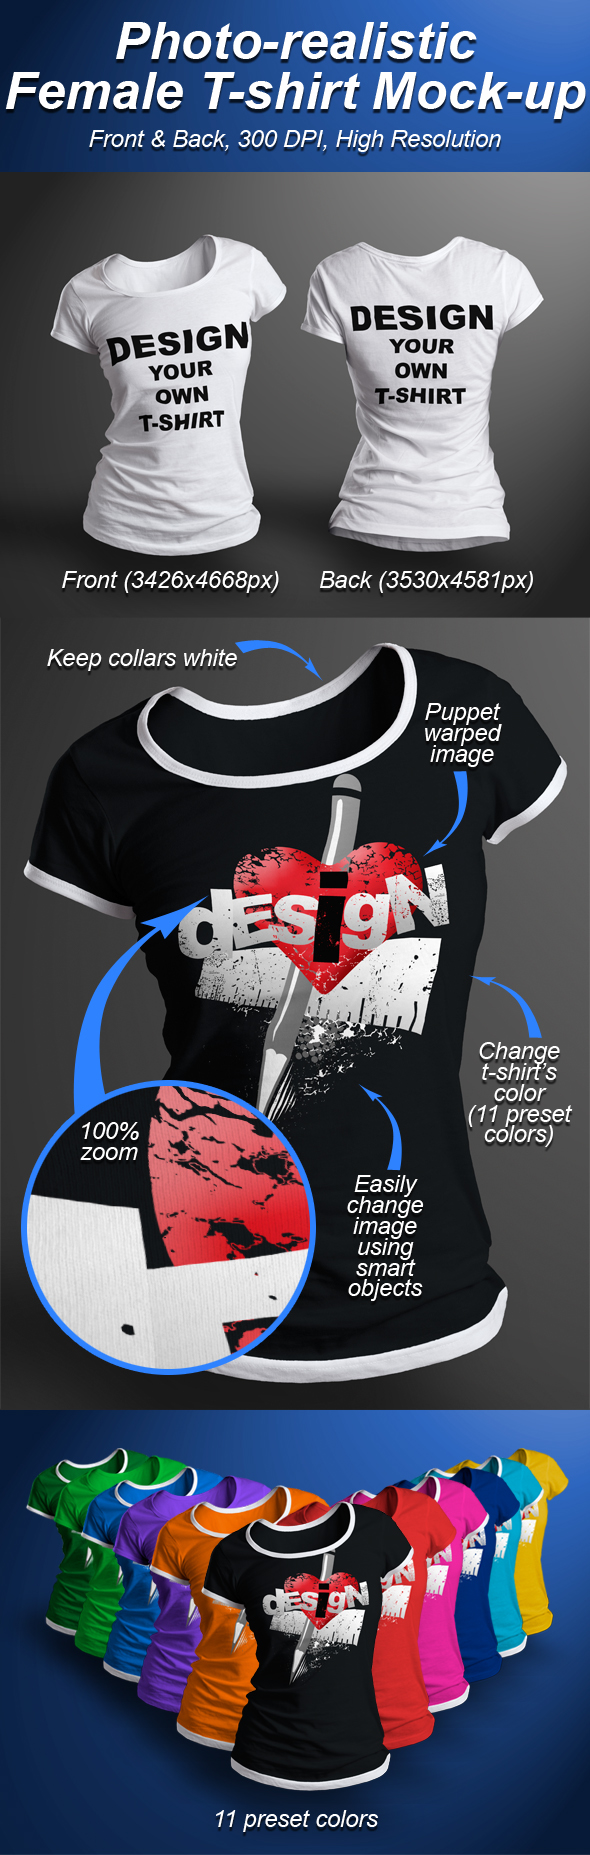 Design your own t-shirt front and back - Try Watching This Video On Www Youtube Com Or Enable Javascript If It Is Disabled In Your Browser